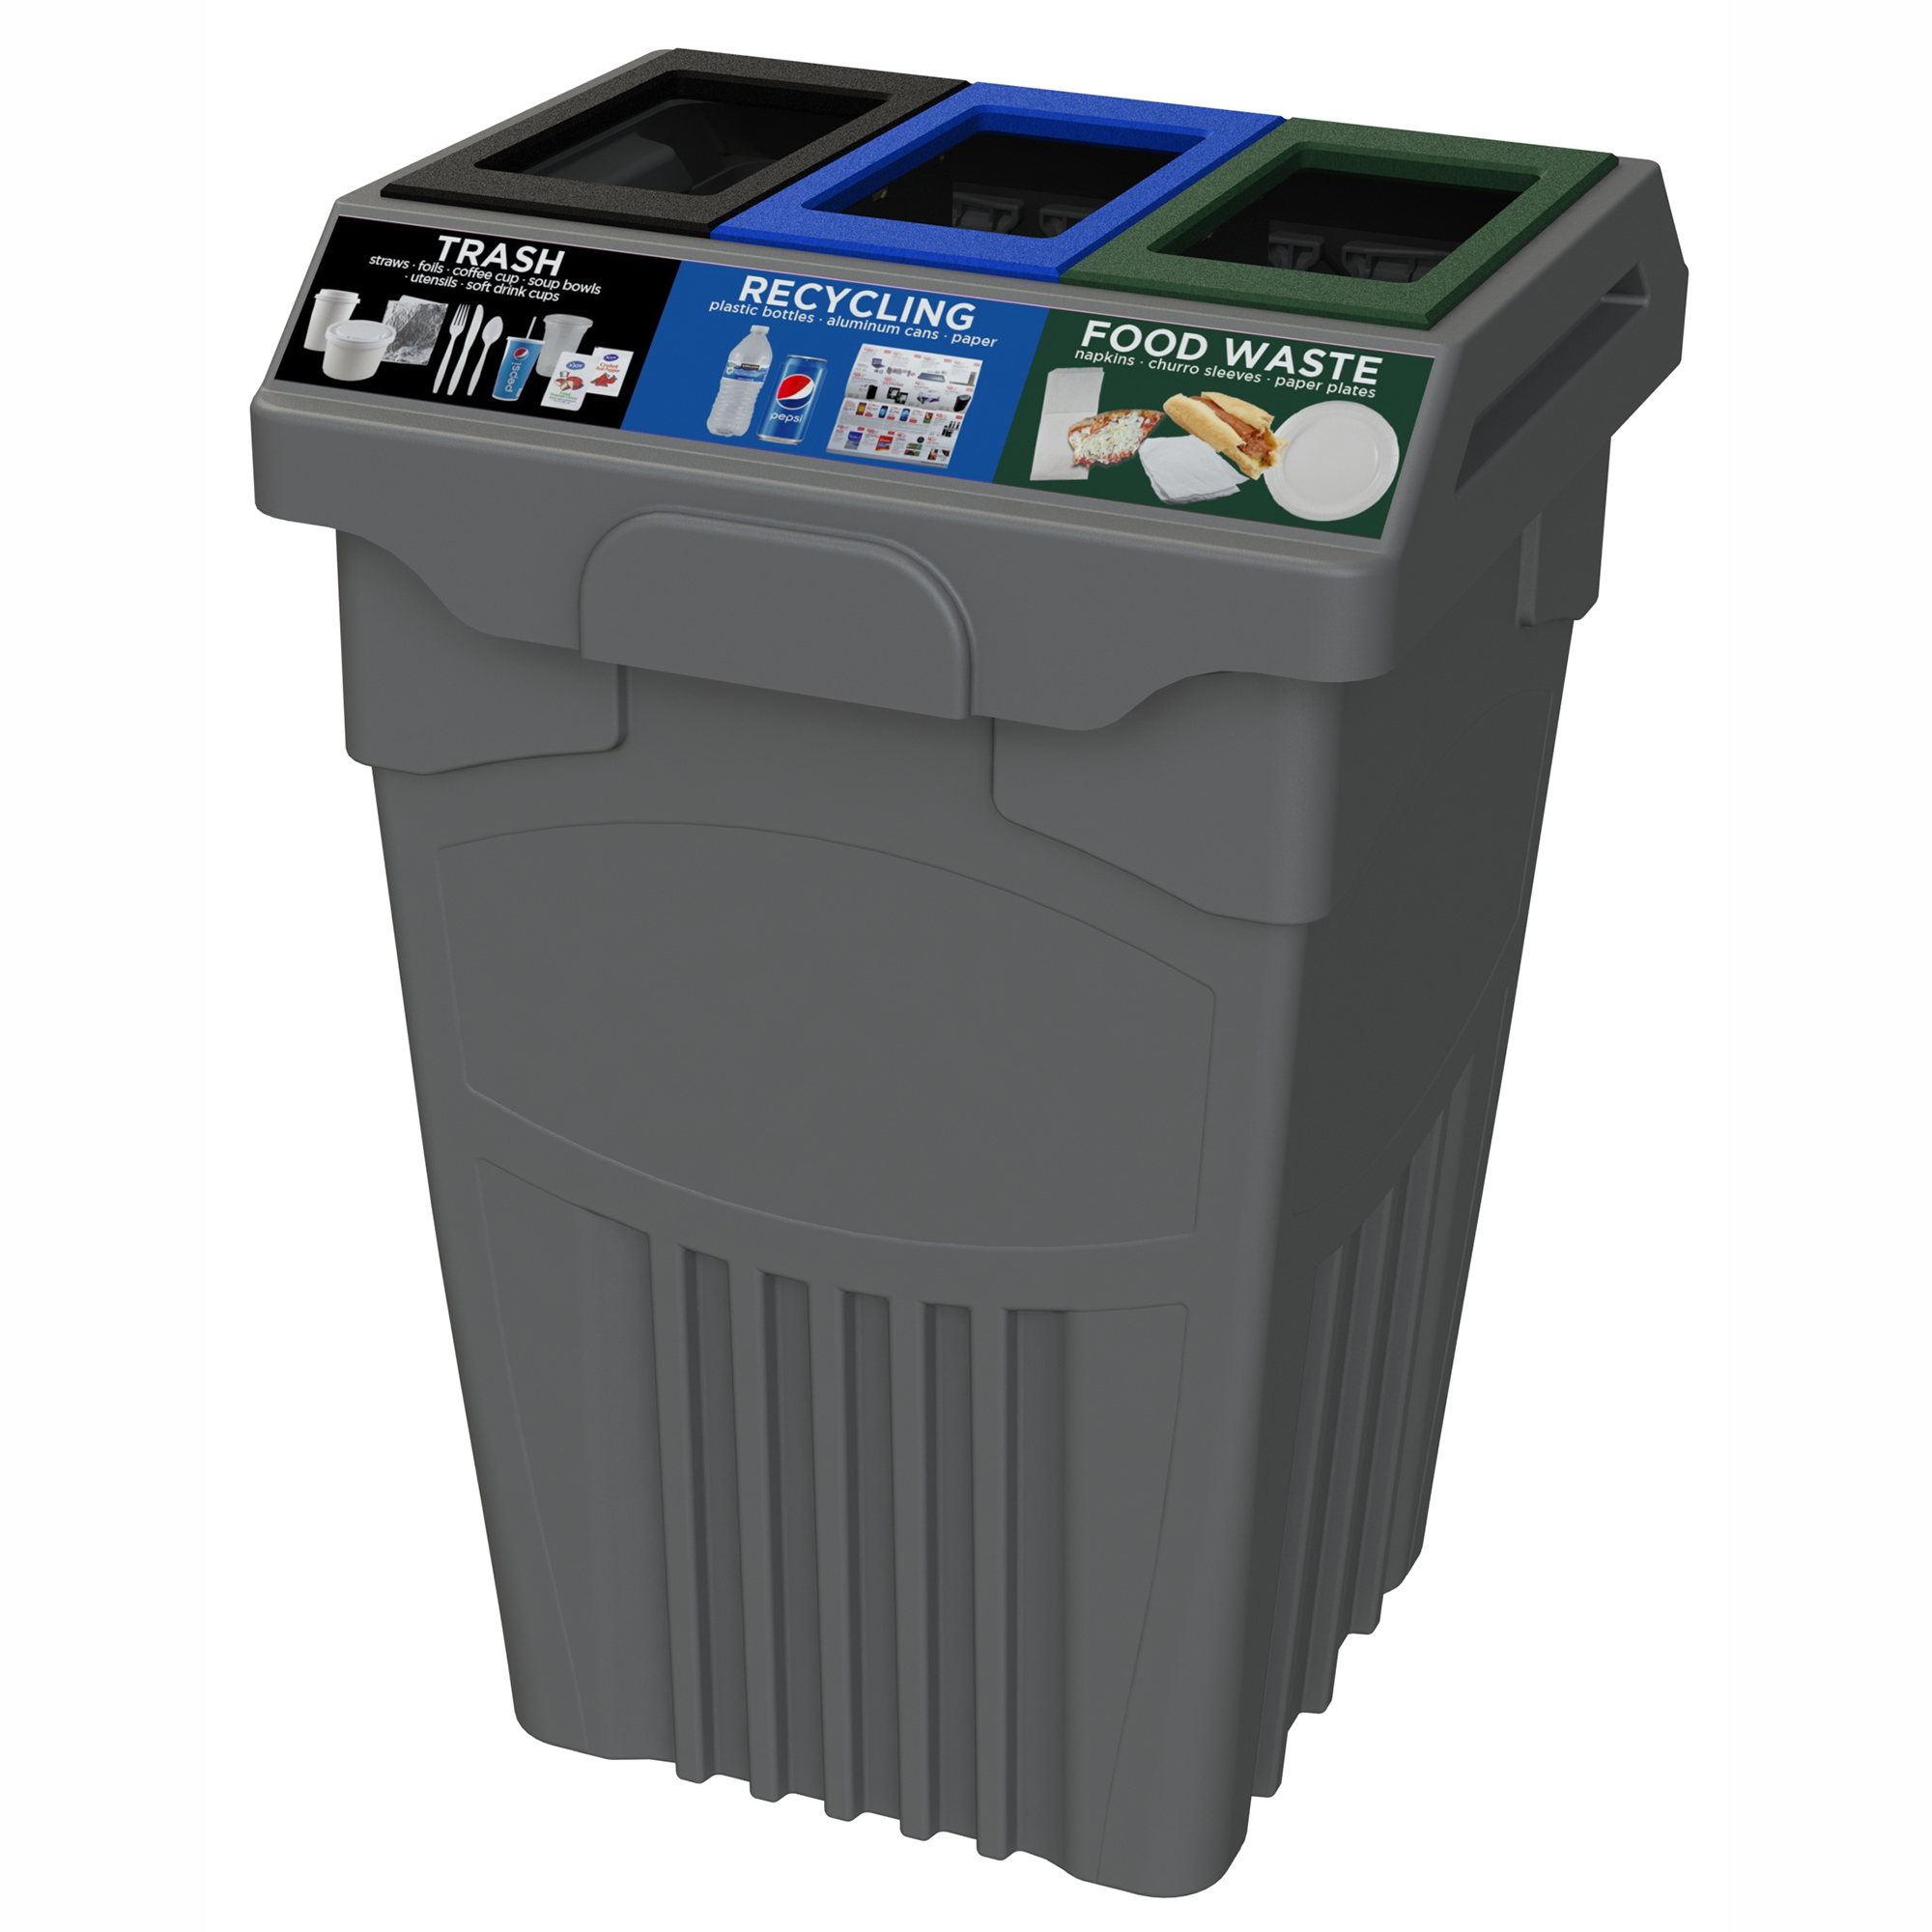 CleanRiver TPM 45 Gallon 3 Stream Recycling Container at Costco  sc 1 st  CleanRiver Recycling Solutions & Costco TPM 45 Gallon Recycling Container - CleanRiver